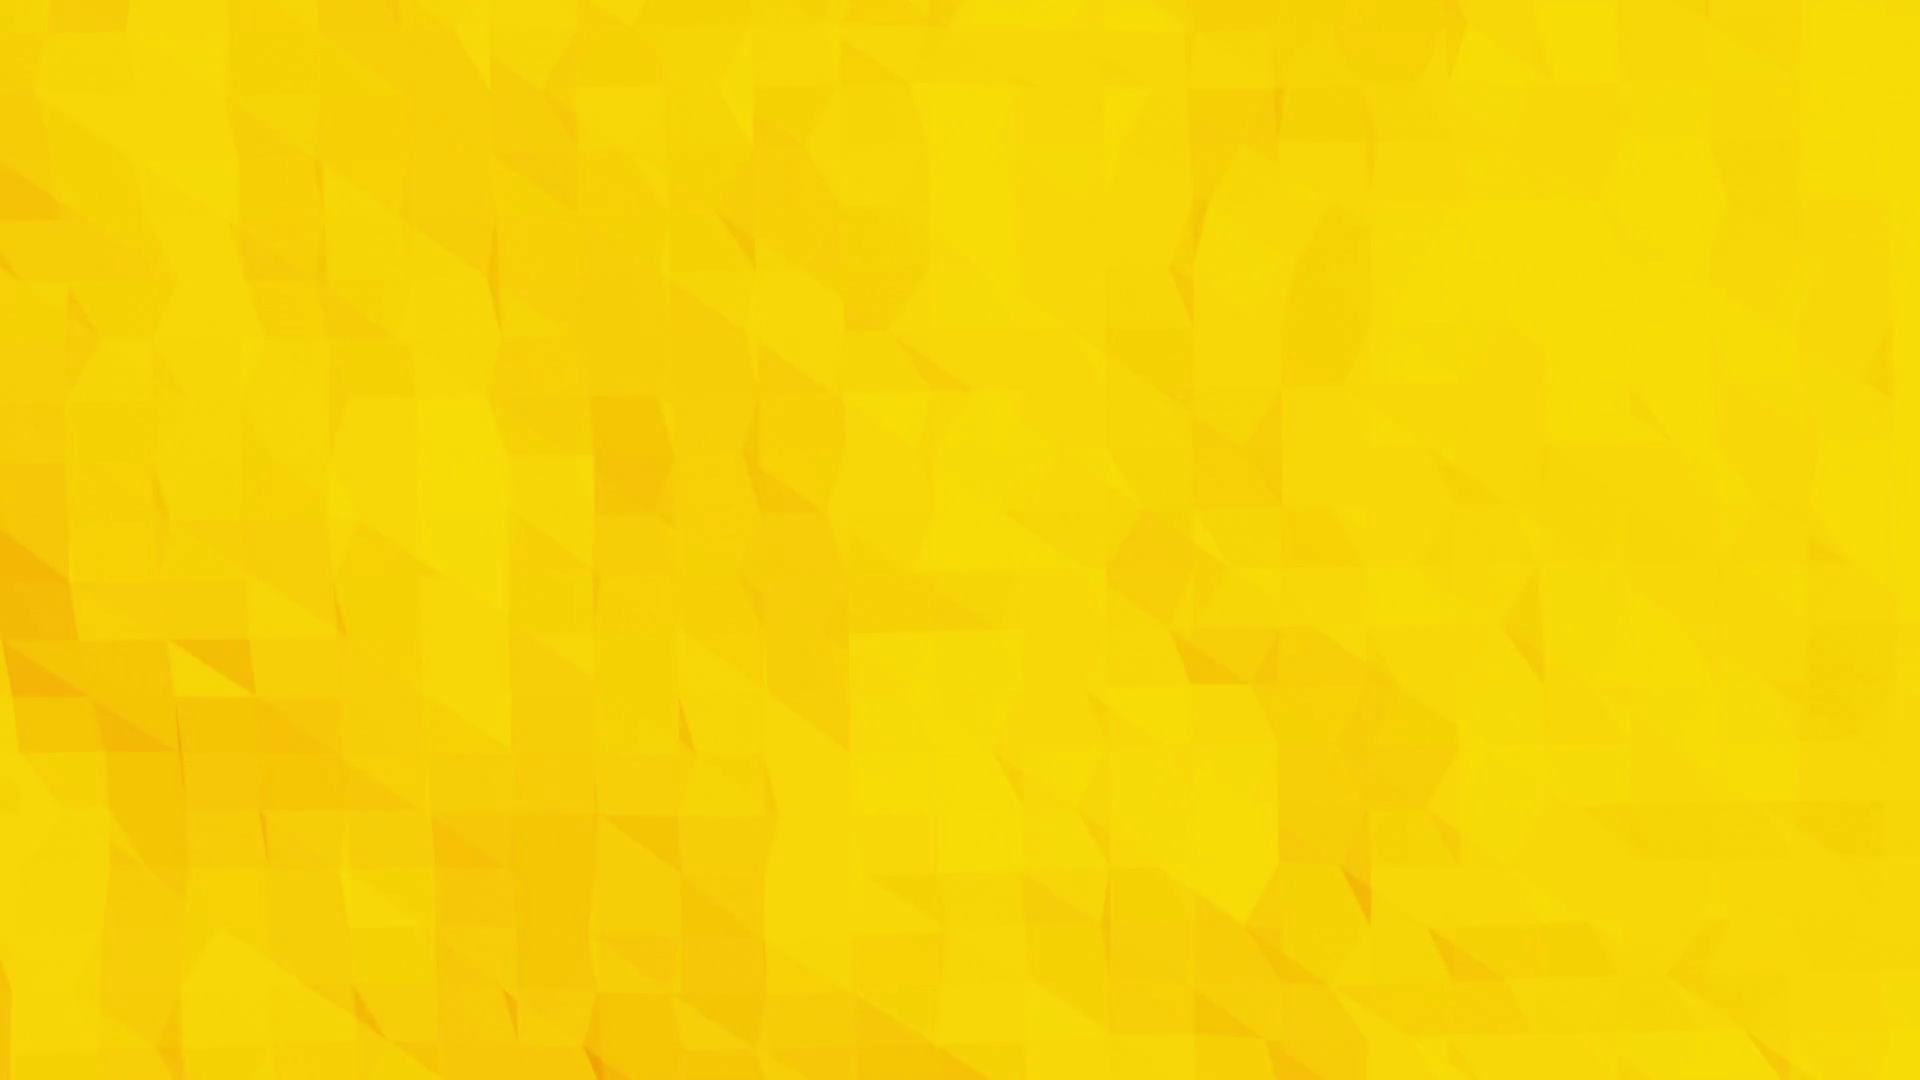 Yellow low poly background oscillating. Abstract low poly surface as ...